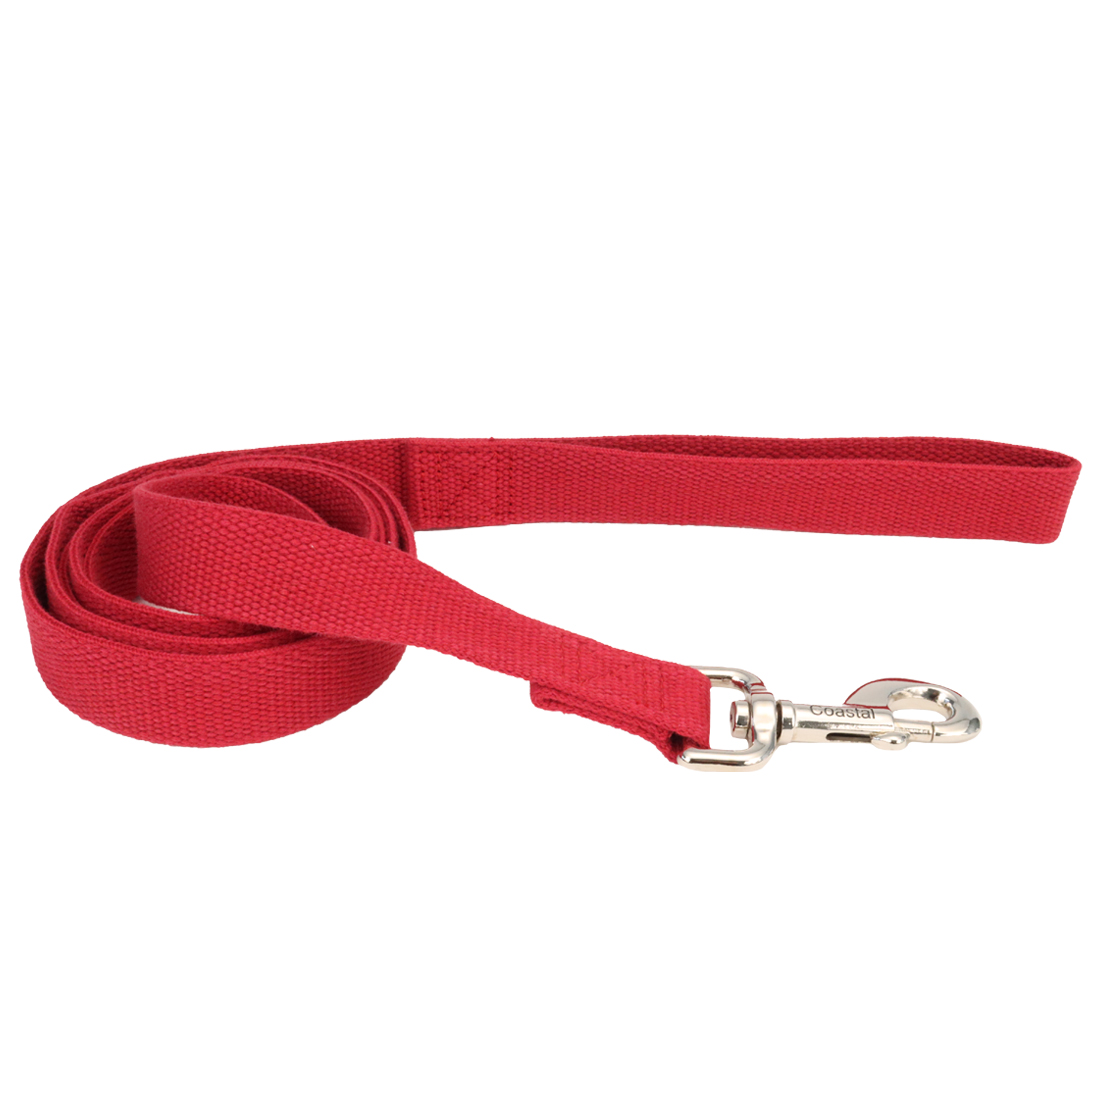 New Earth Soy Dog Leash, Cranberry, 5/8-inx-in